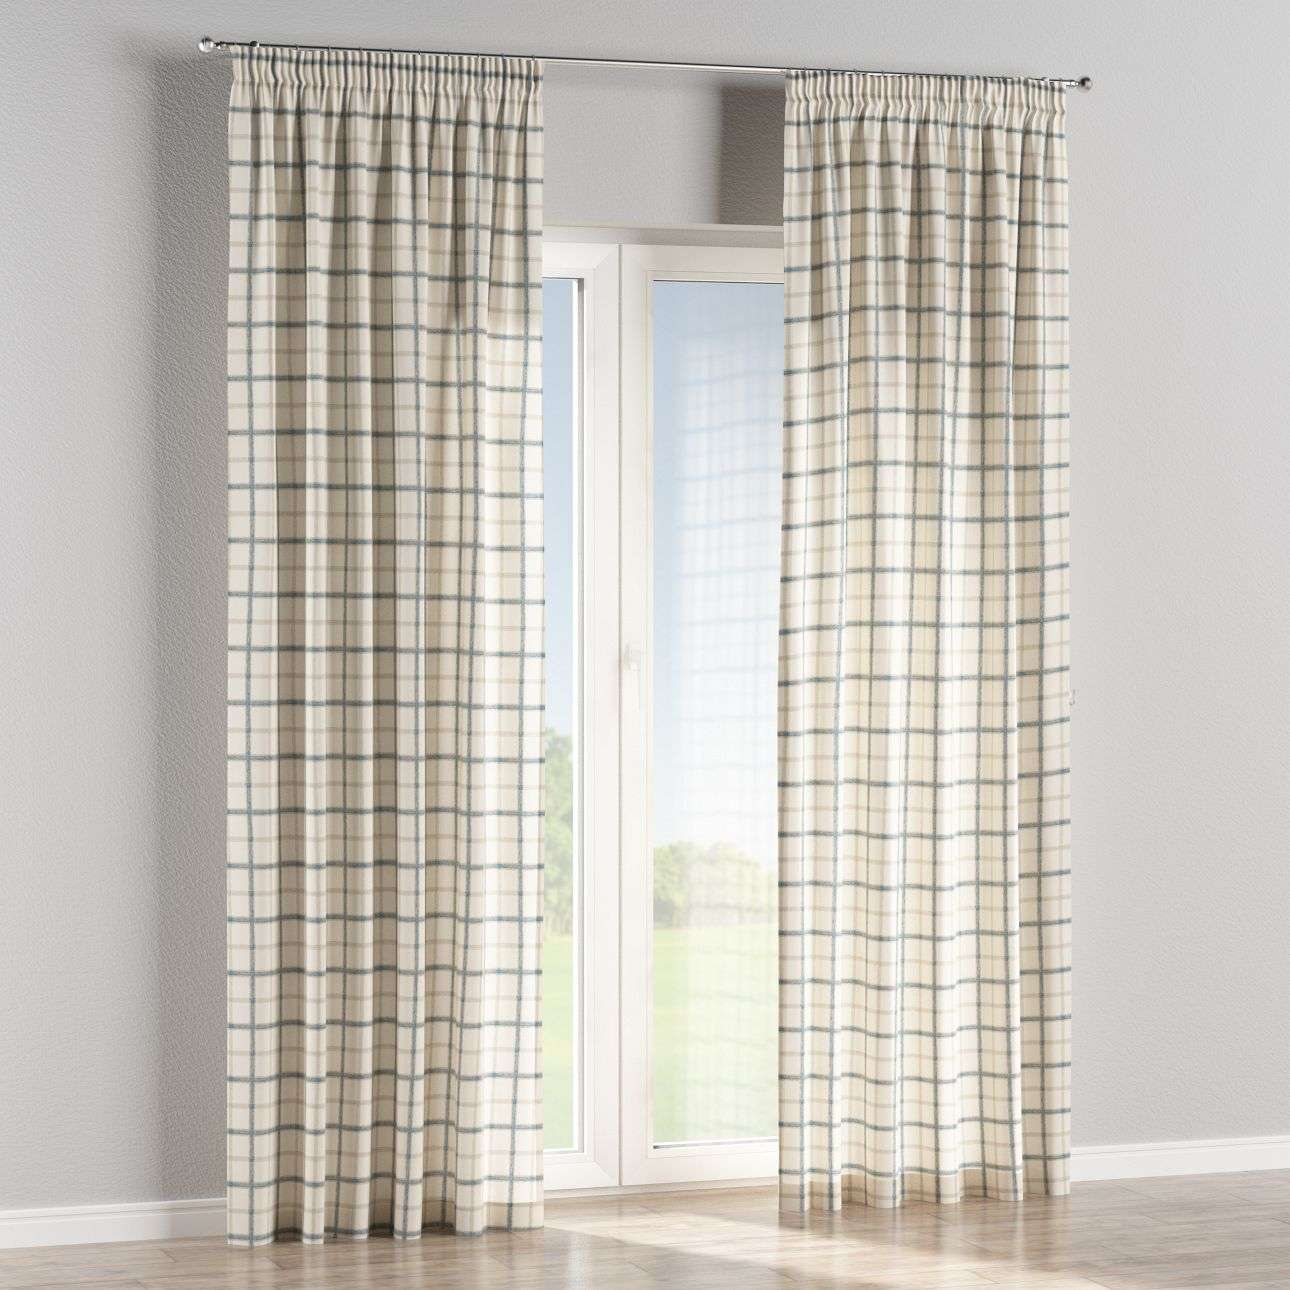 Pencil pleat curtains 130 × 260 cm (51 × 102 inch) in collection Avinon, fabric: 131-66